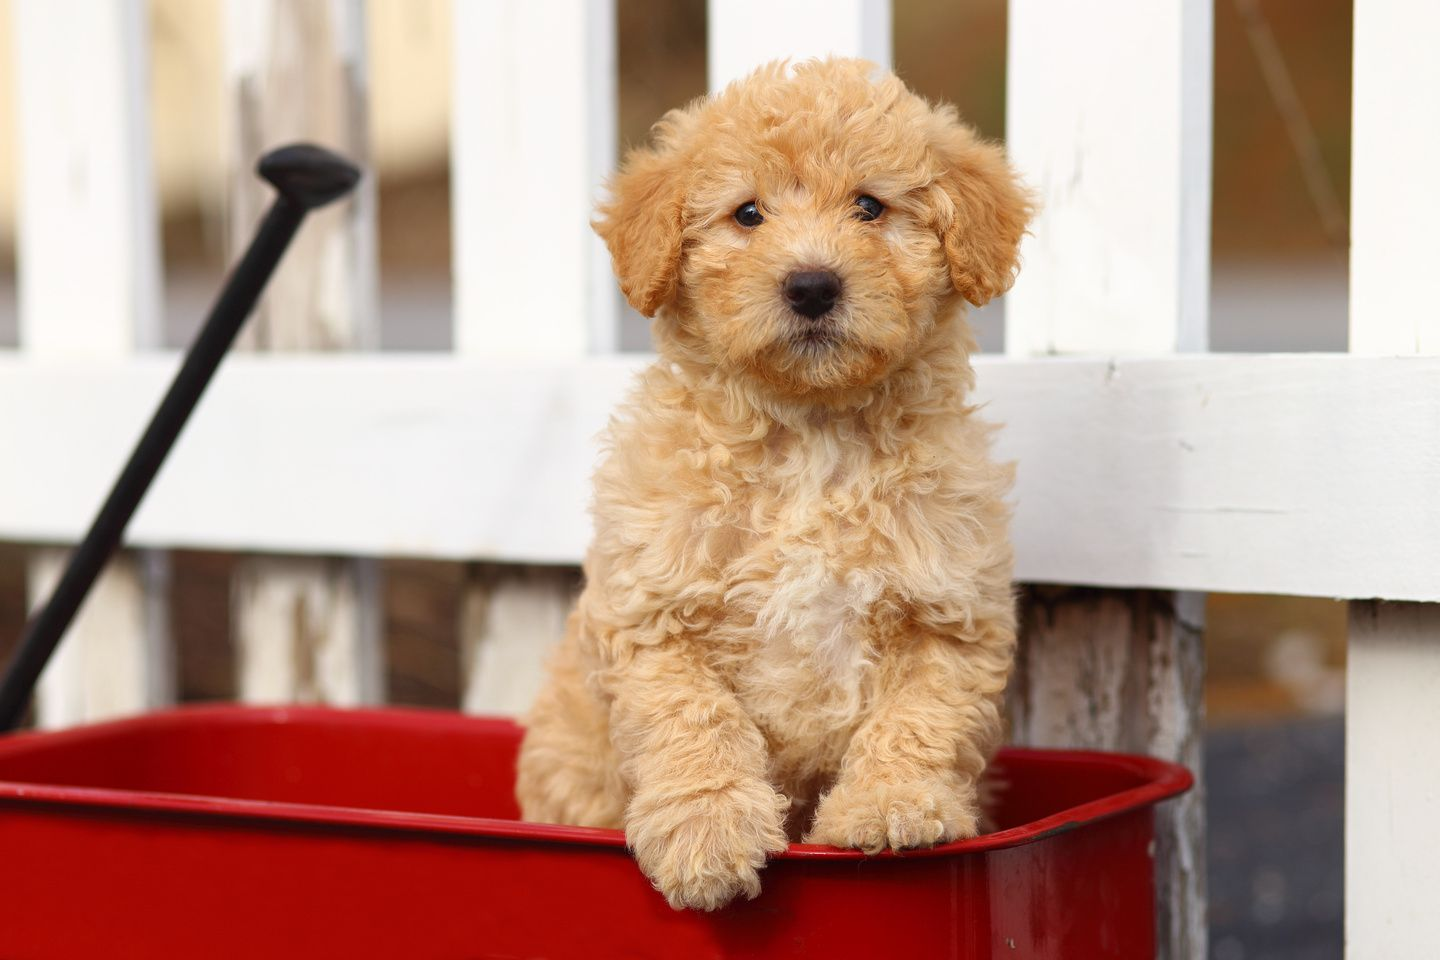 Labradoodles Mini Labradoodle Puppy In Red Wagon Labradoodle Puppy Labradoodle Puppies For Sale Greenfield Puppies